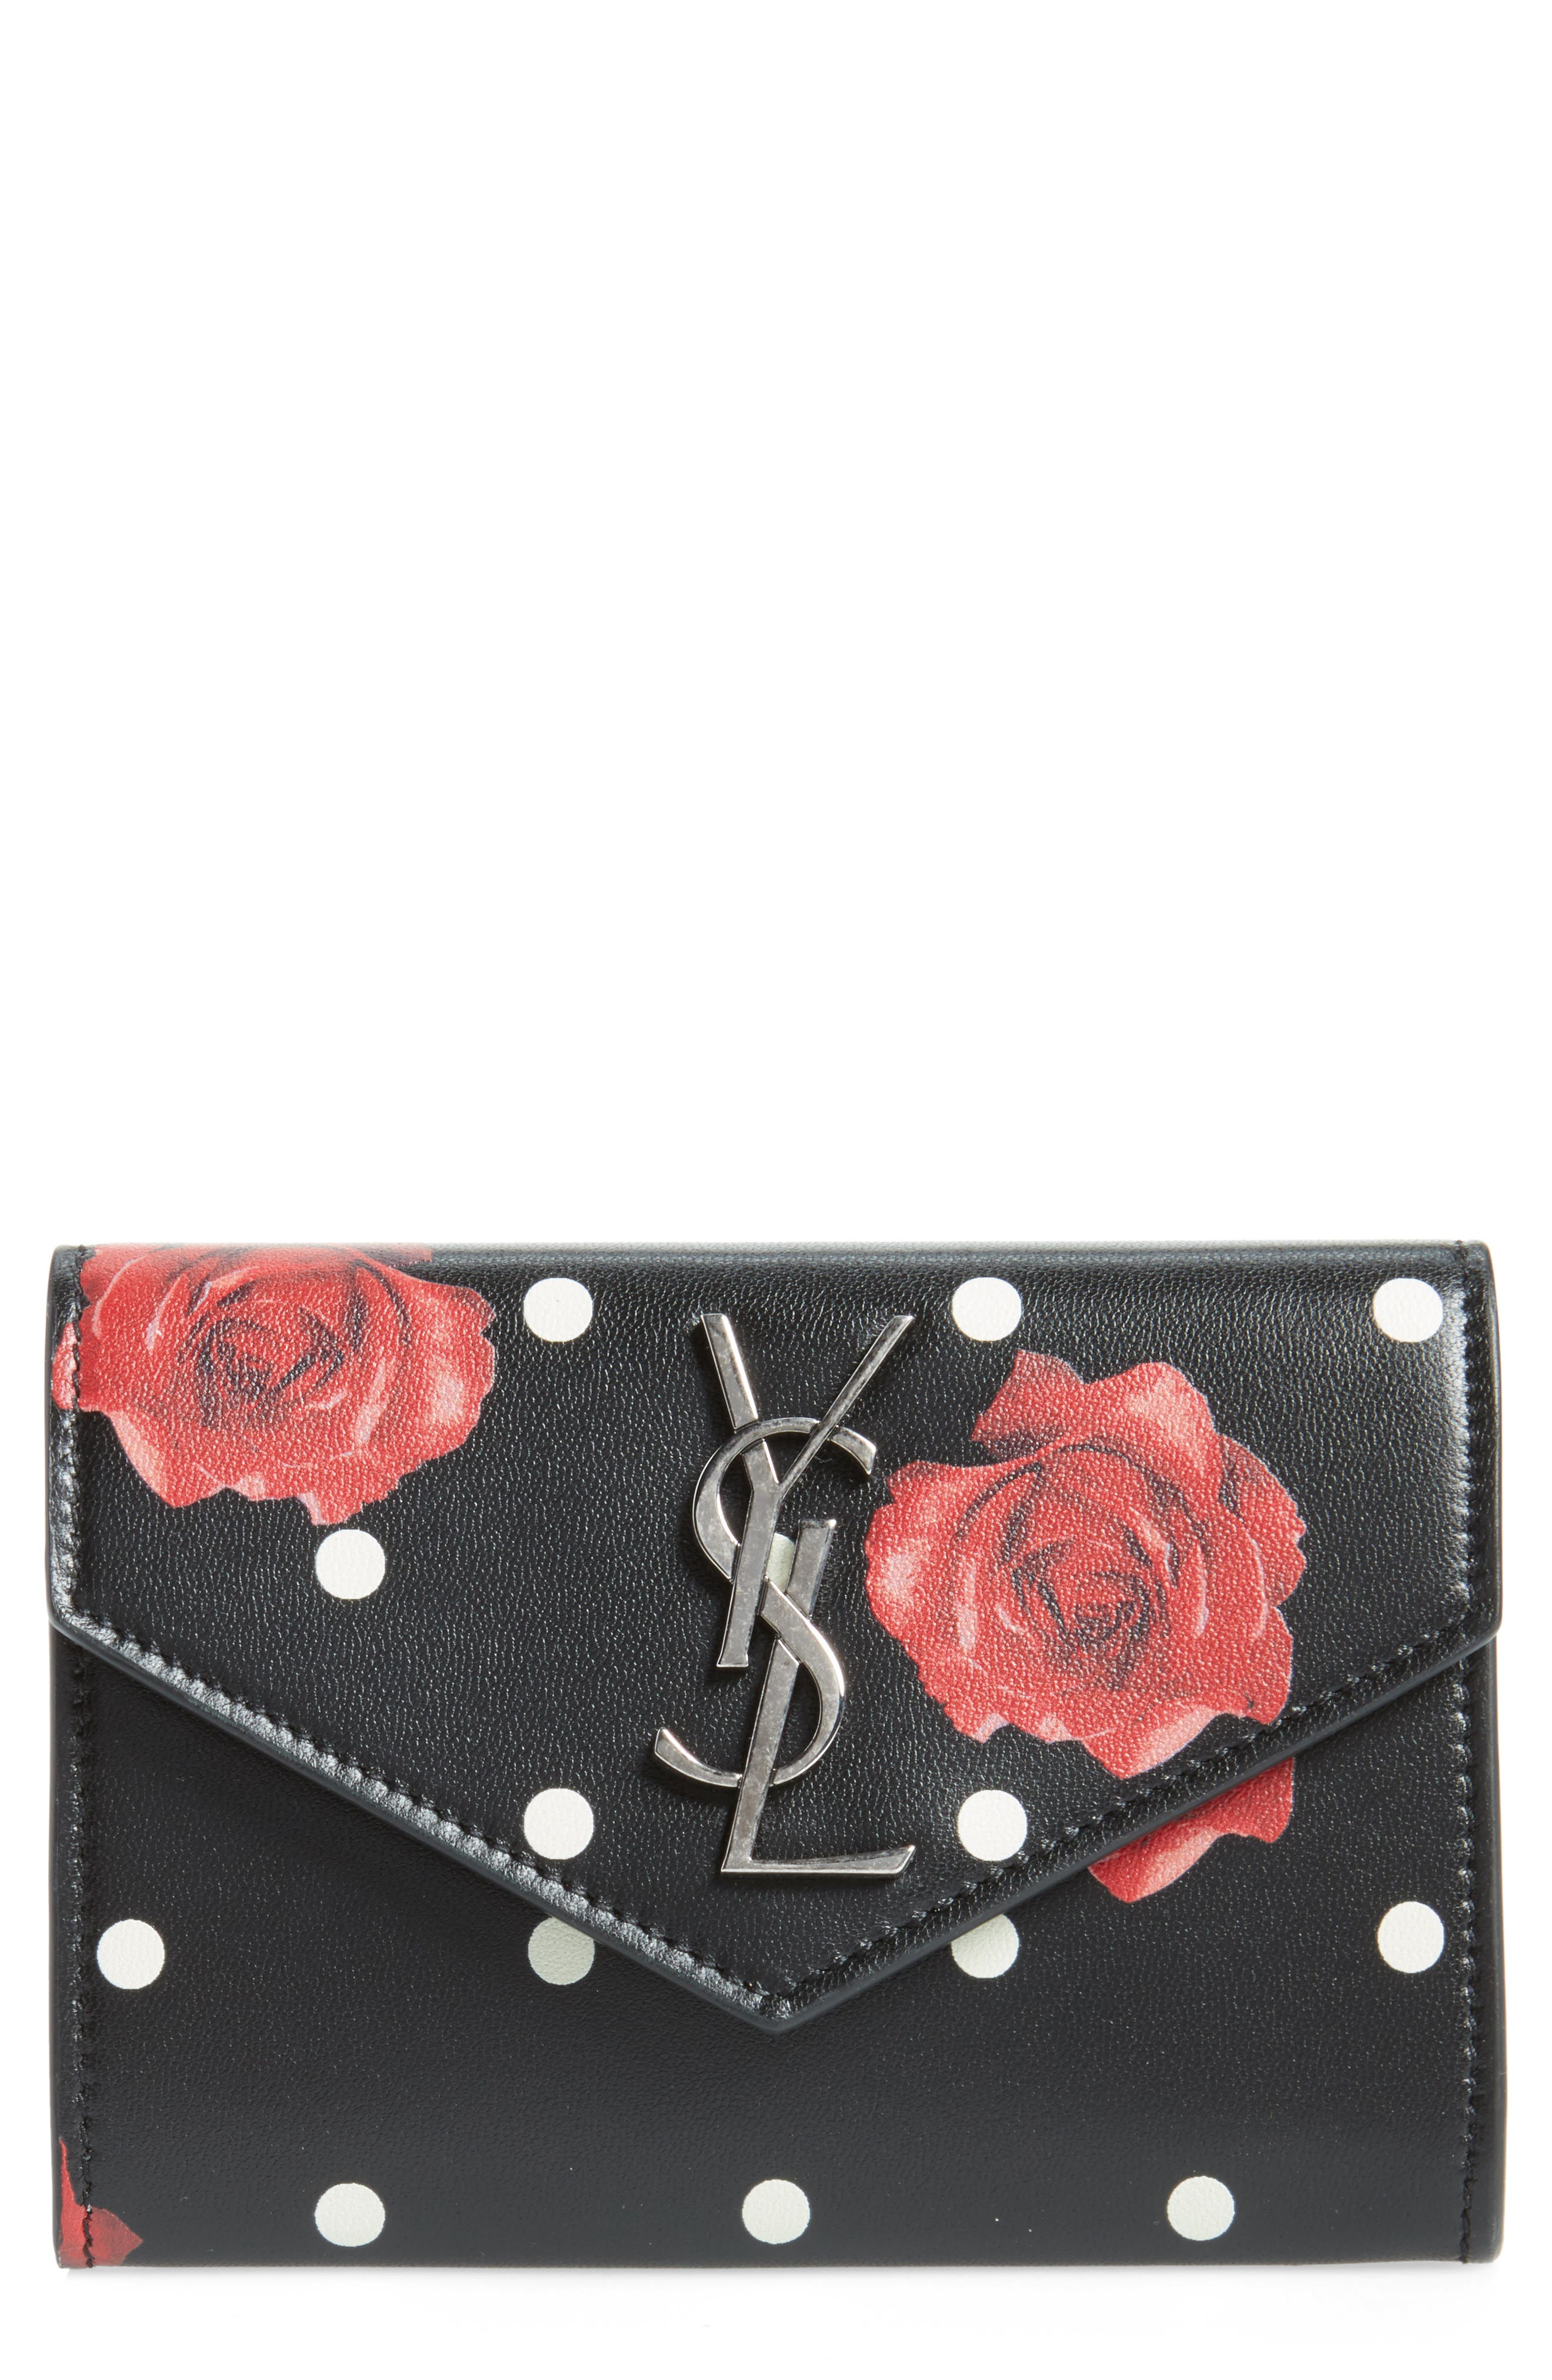 Rose & Polka Dot Small Leather French Wallet,                         Main,                         color, 001